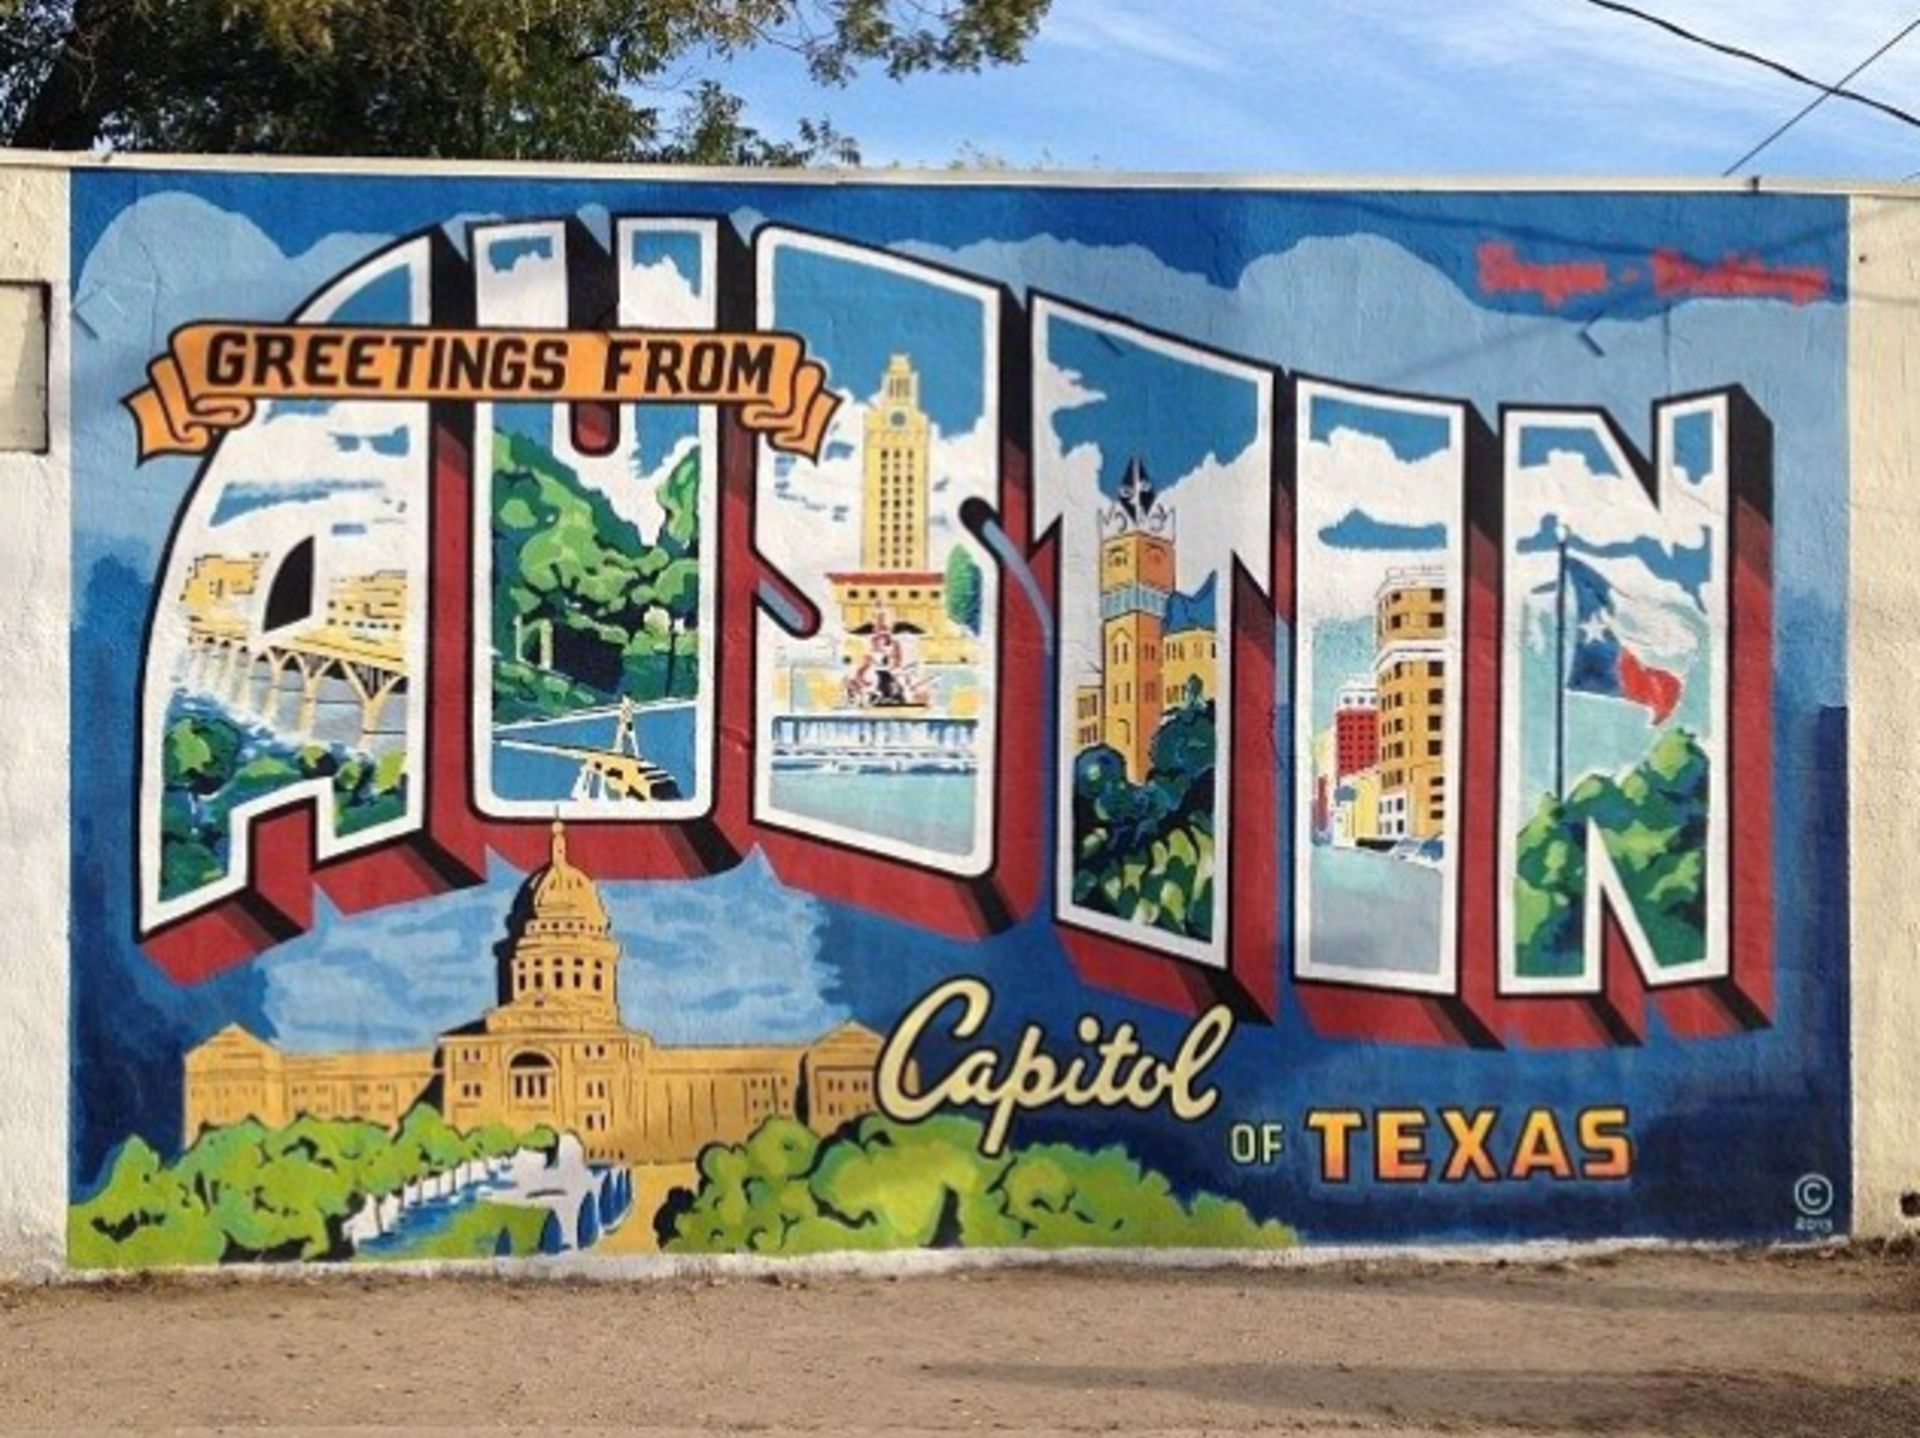 Austin ranked #1 best place to live in the USA for the 3rd year in a row